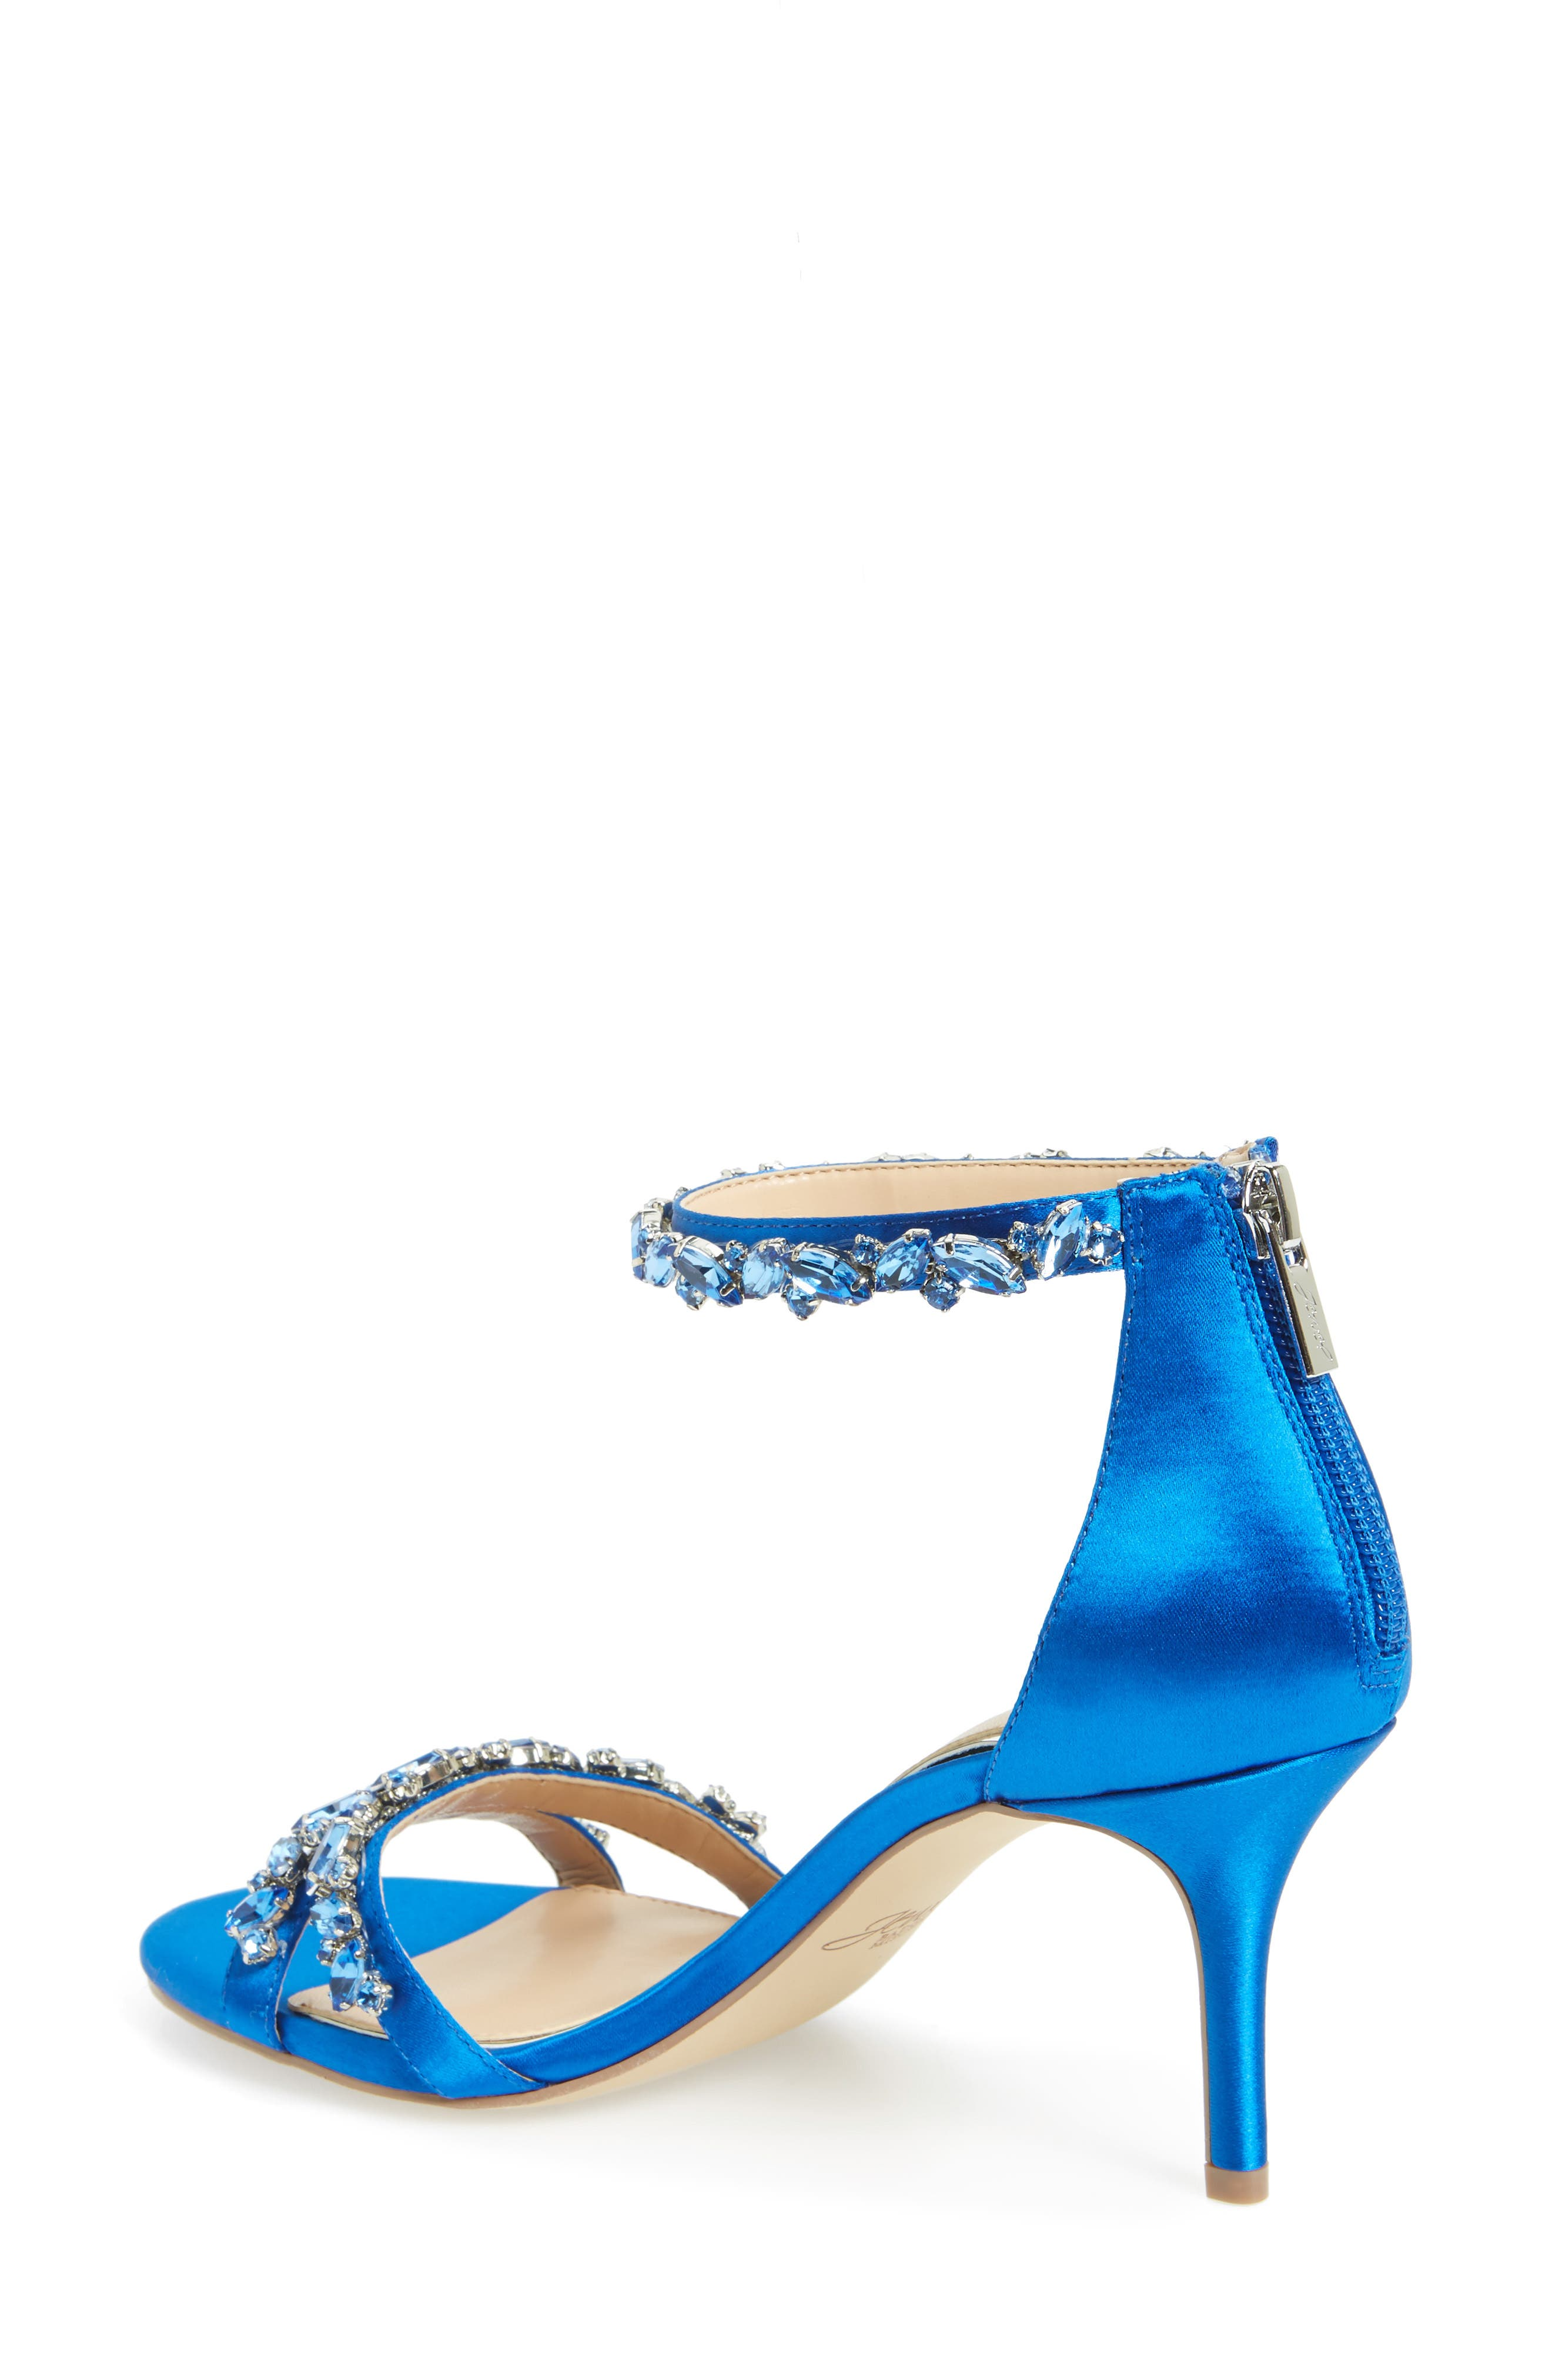 Caroline Embellished Sandal,                             Alternate thumbnail 8, color,